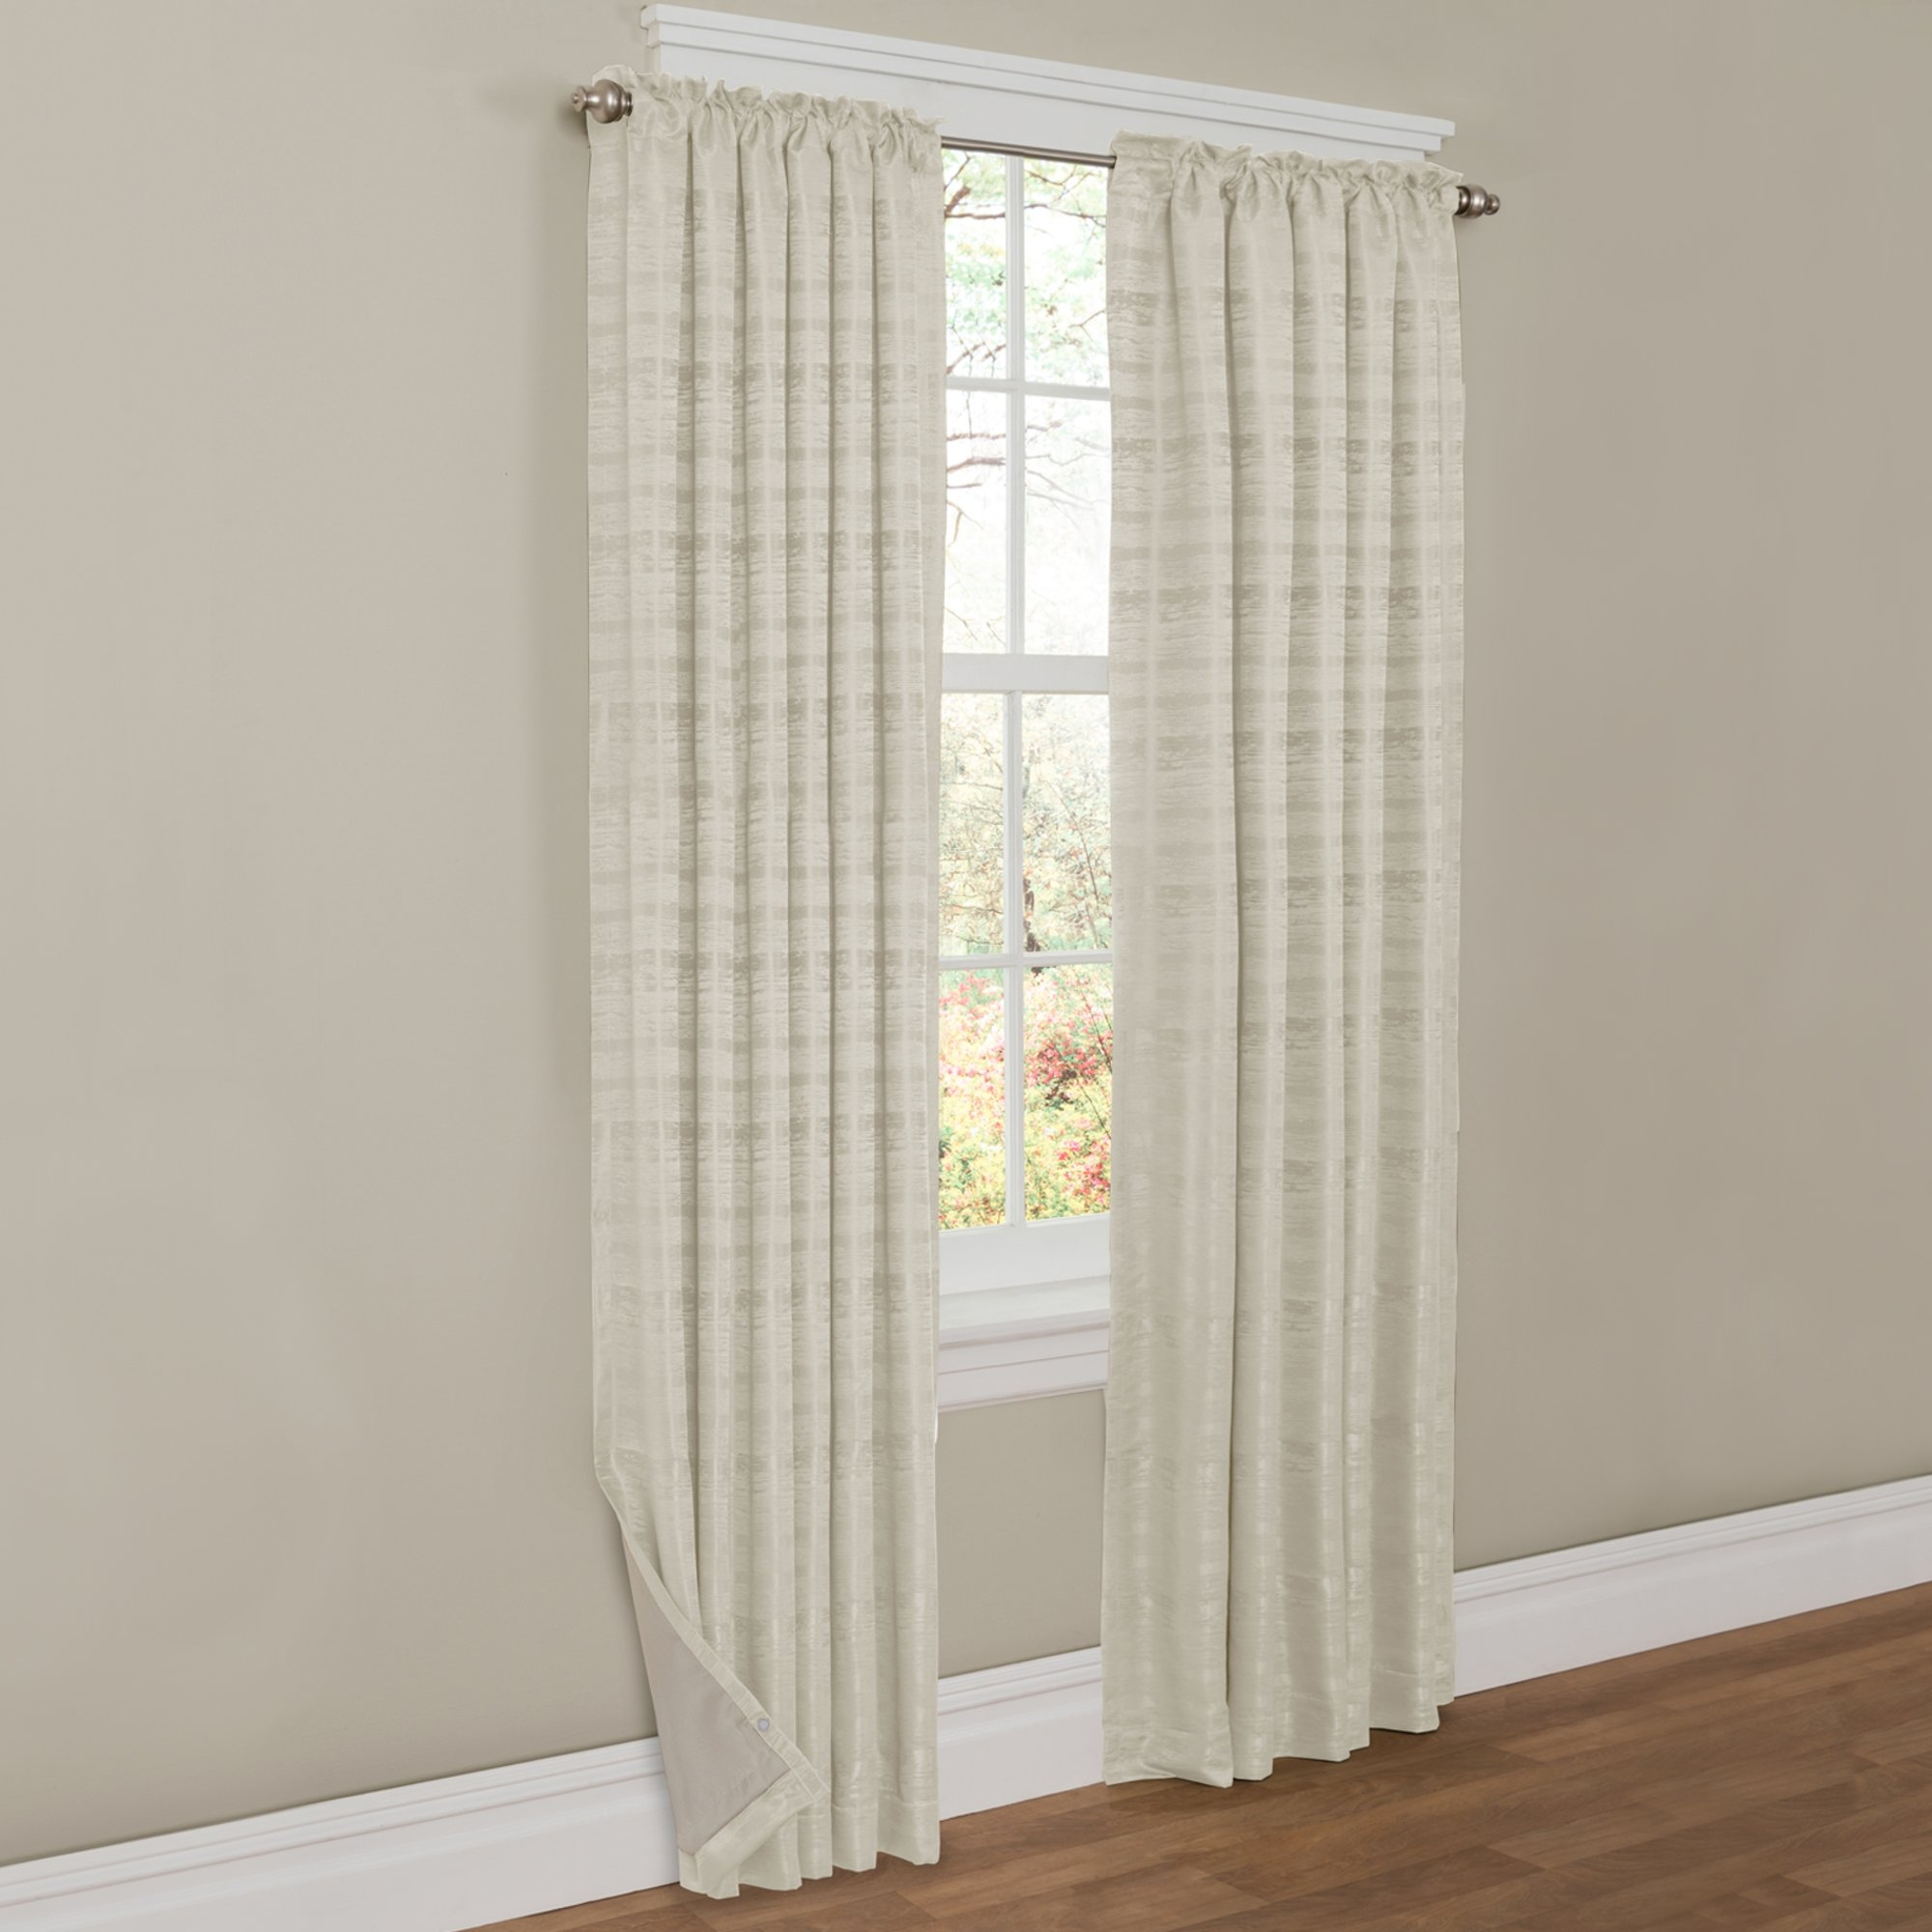 Maytex Francesca Striped Blackout Thermal Rod Pocket Single With Regard To Striped Thermal Curtains (Image 10 of 15)